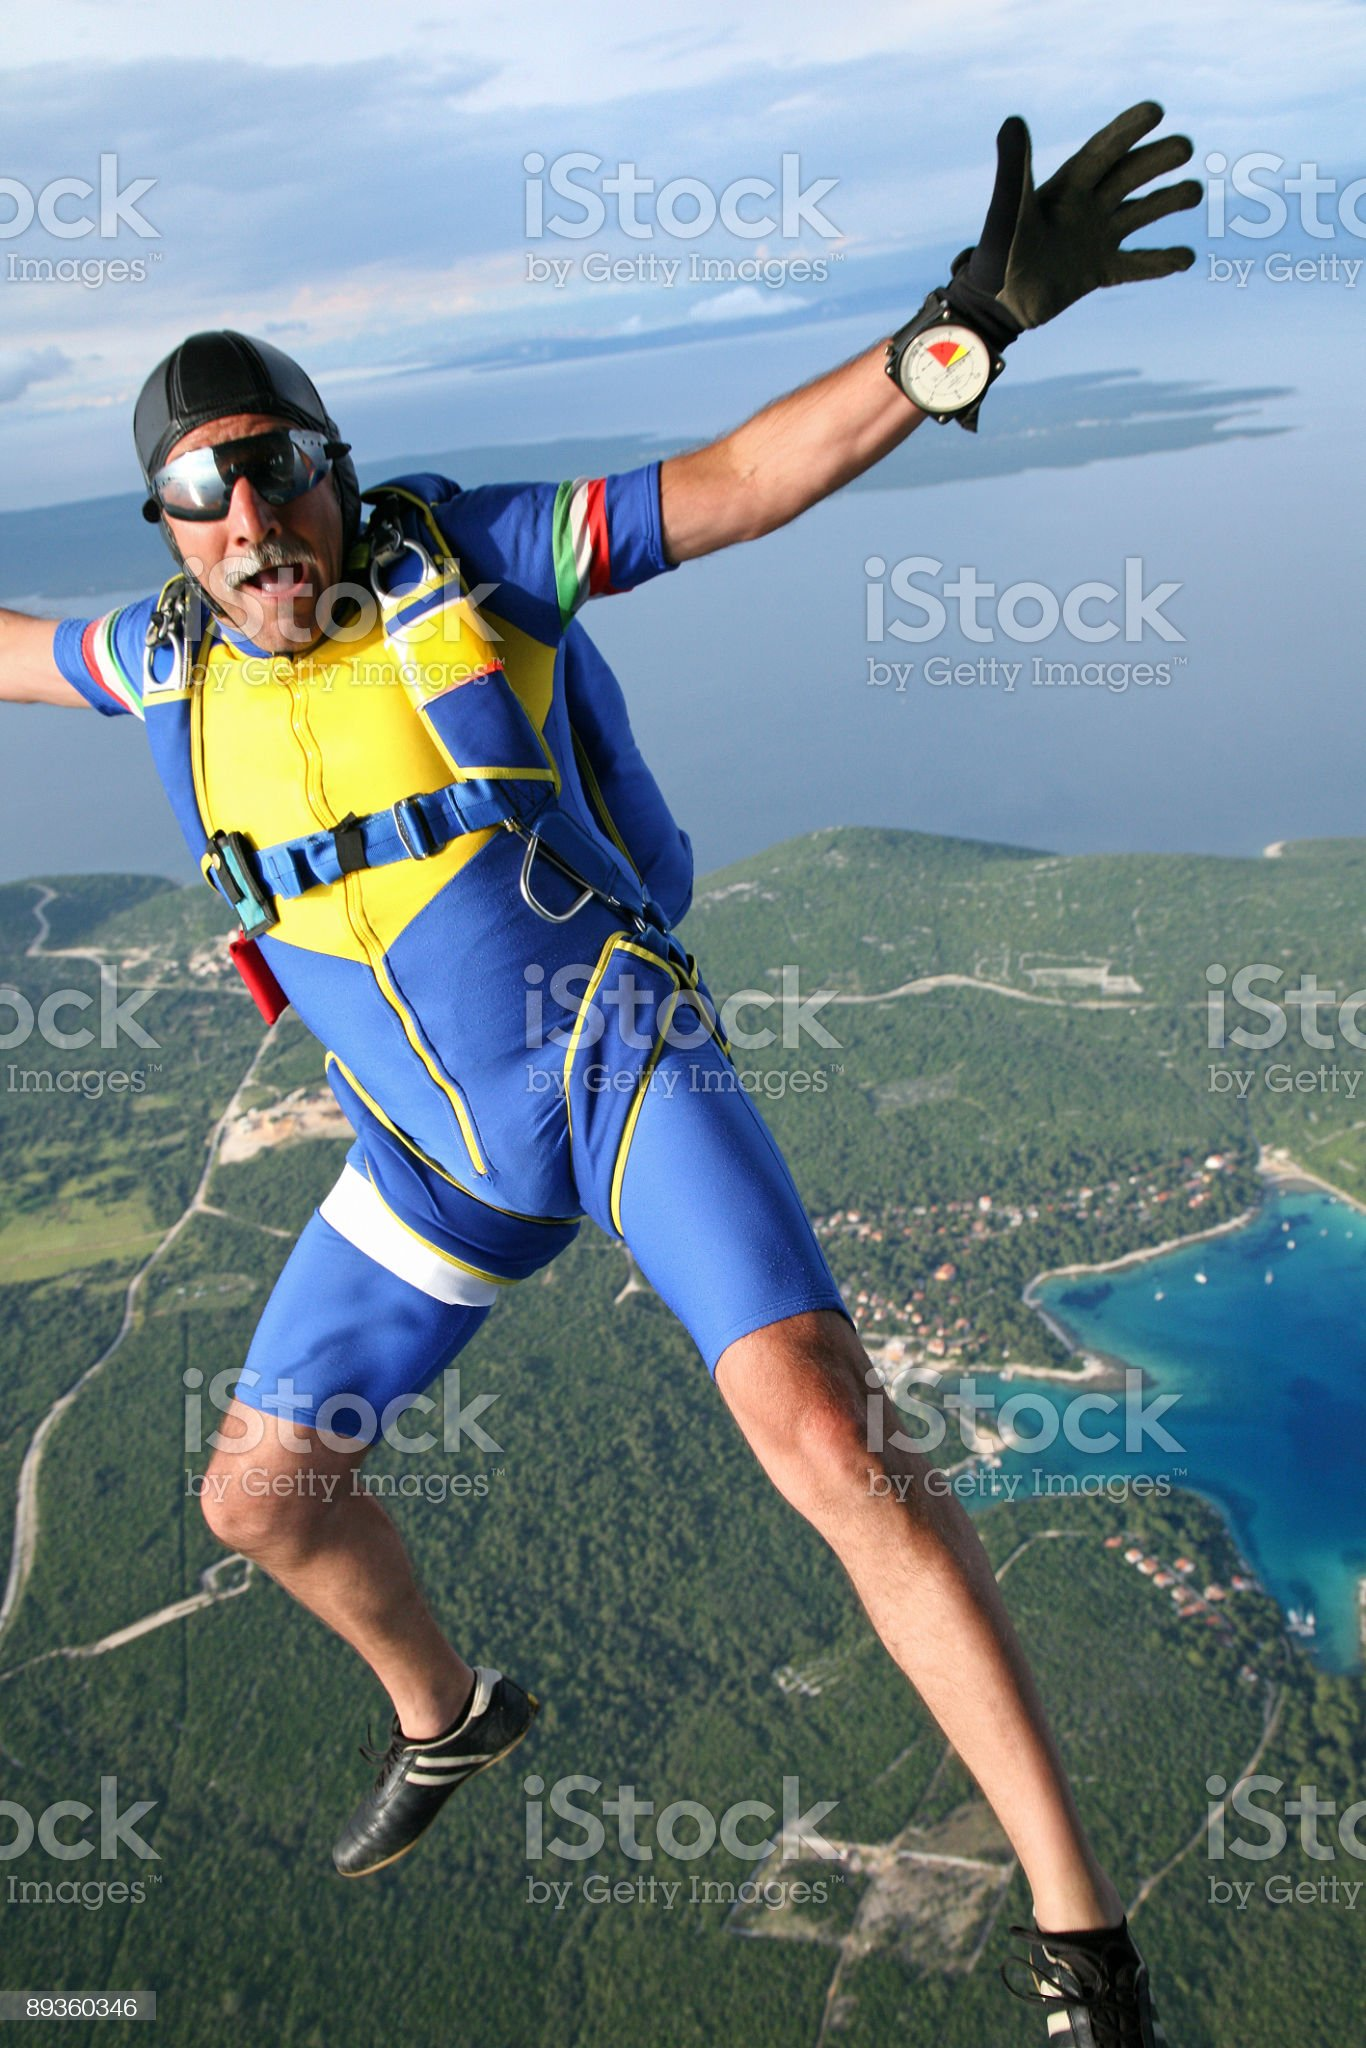 Old skydiver in action royalty-free stock photo